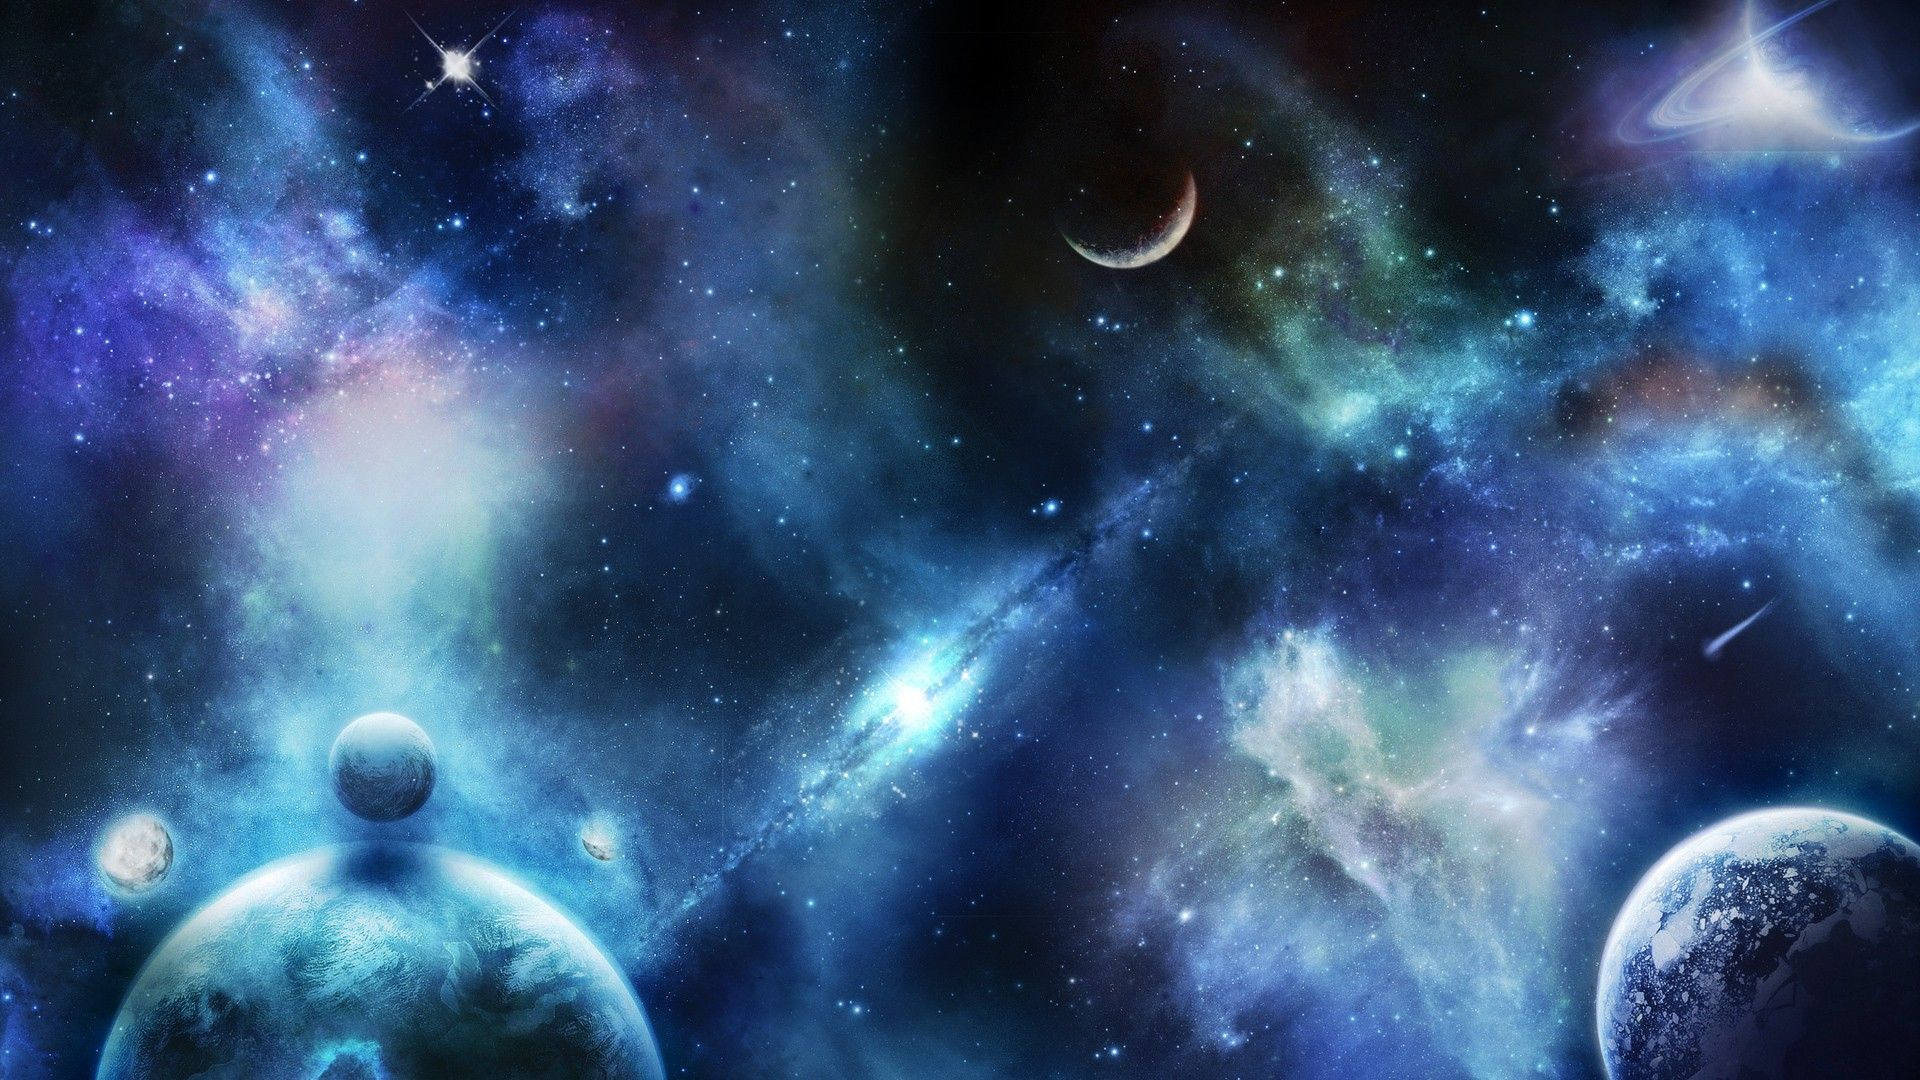 Space Themed Cool HD Wallpaper